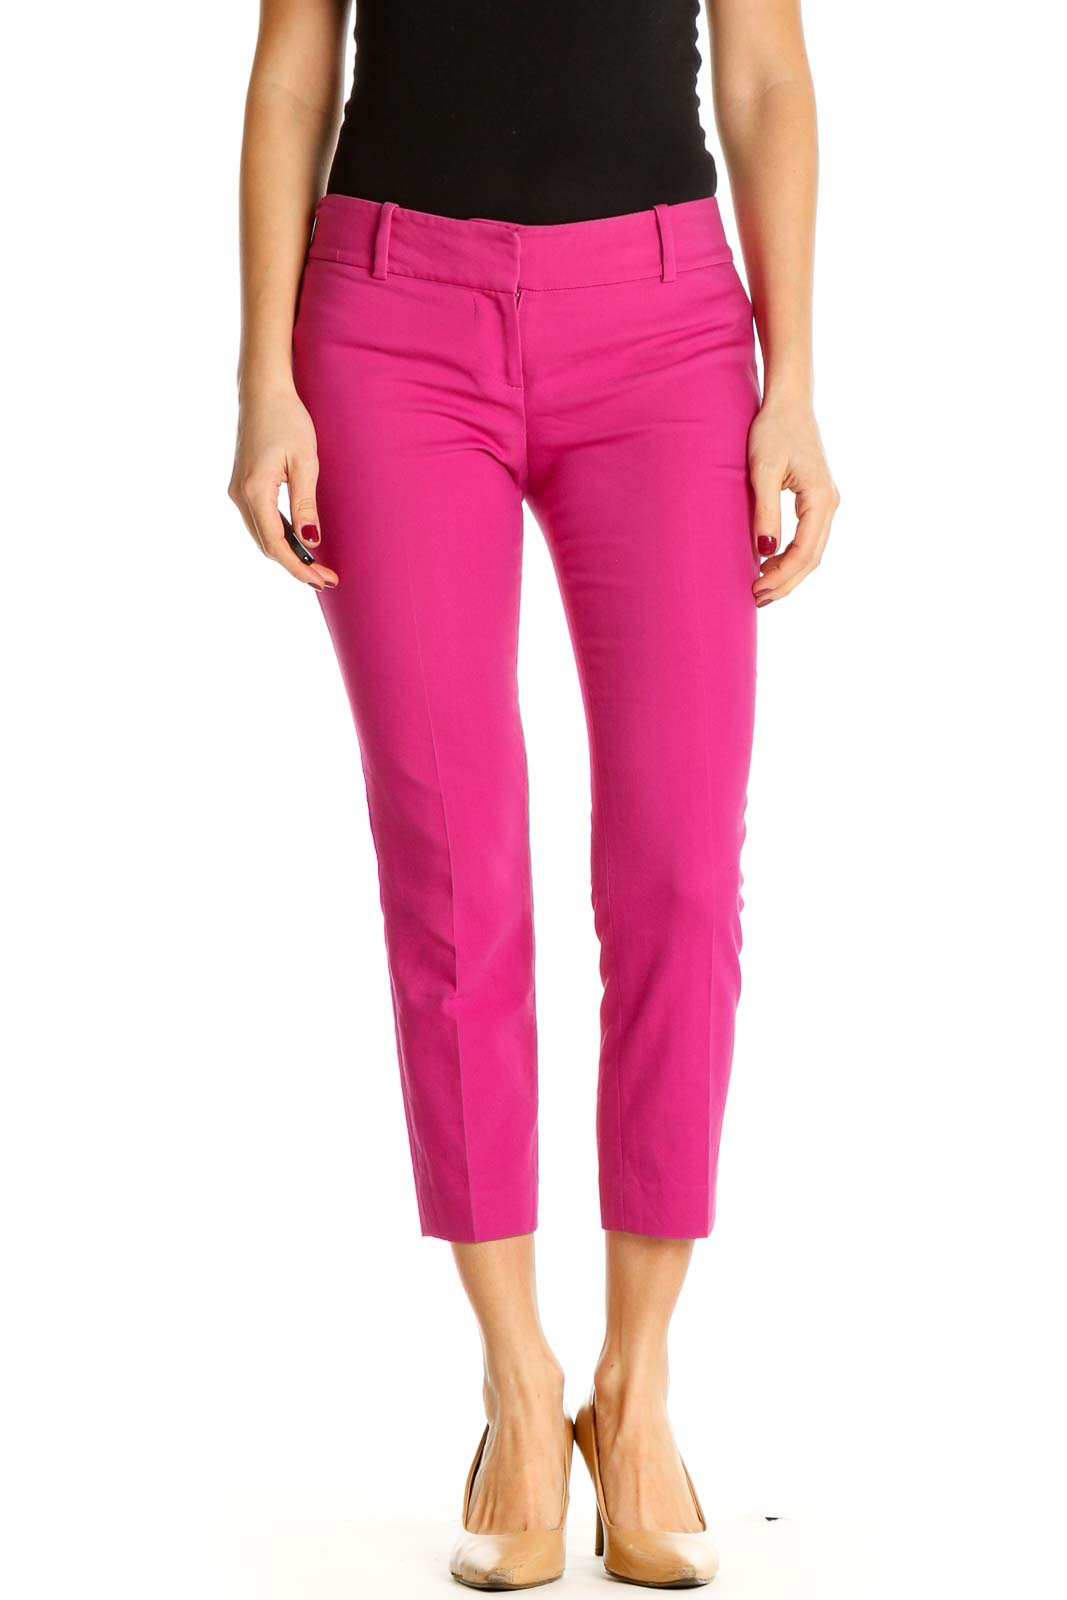 Pink Solid All Day Wear Leggings Front